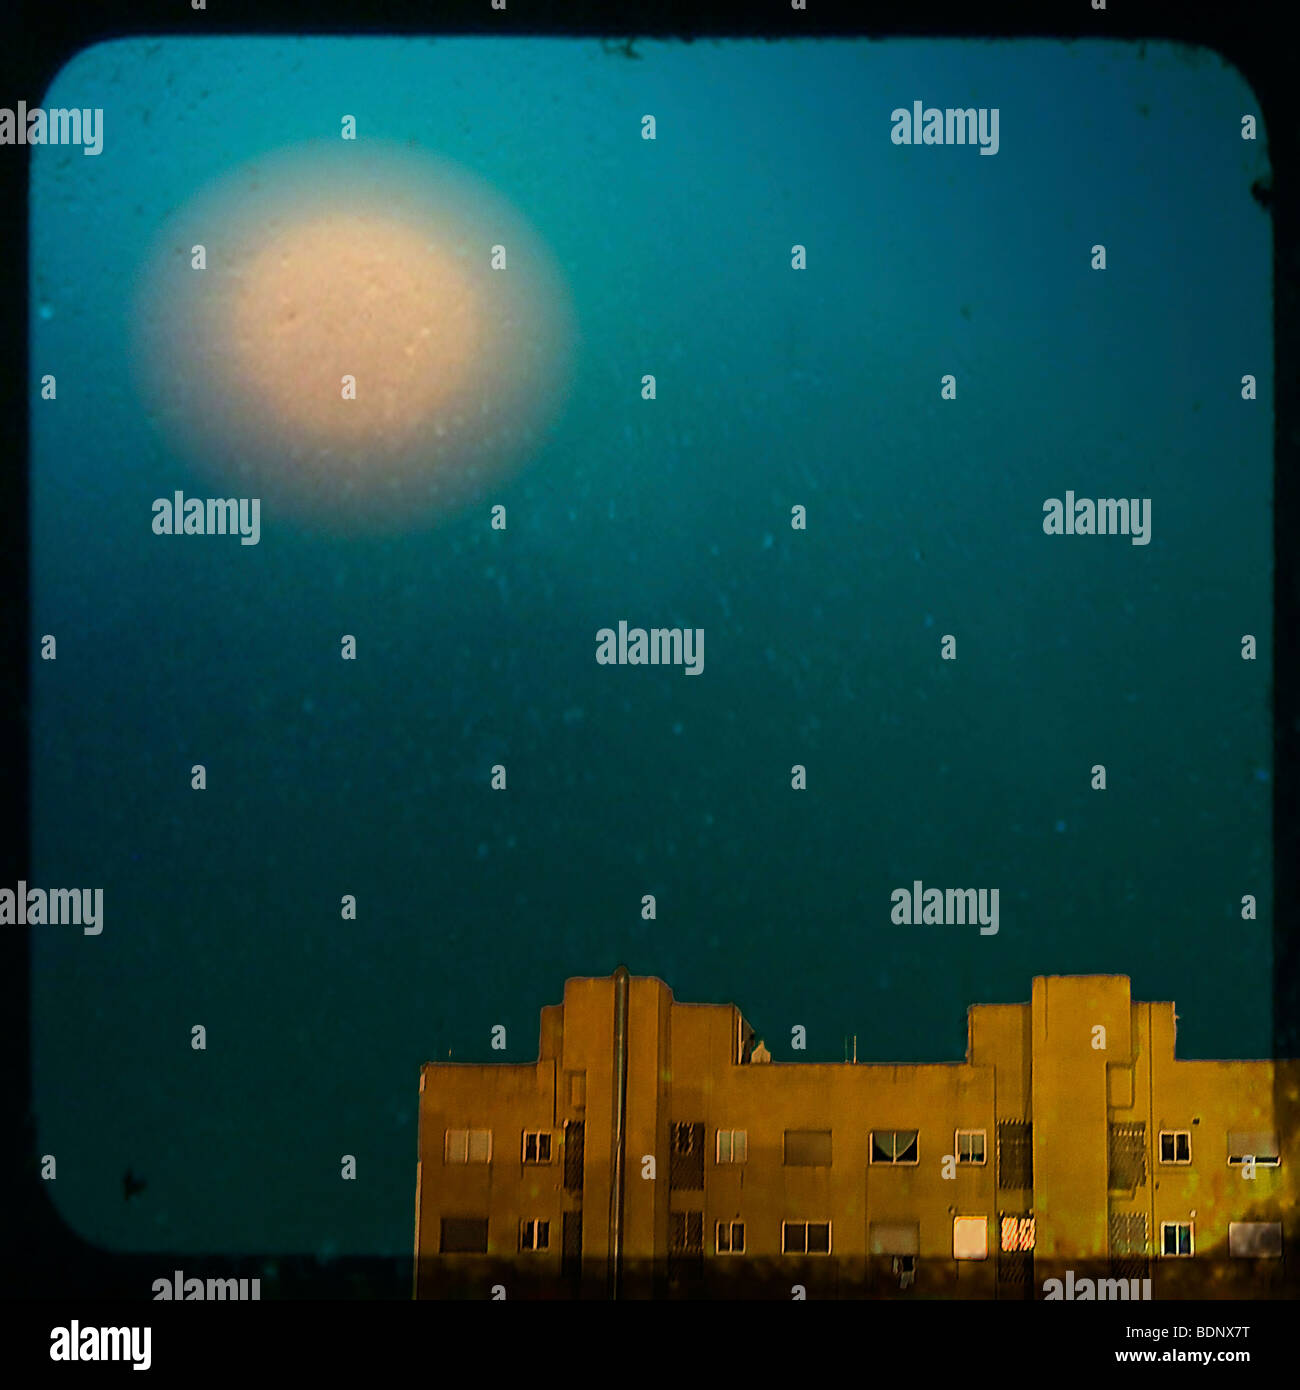 The Moon shining in a blue sky over a block of flats - Stock Image